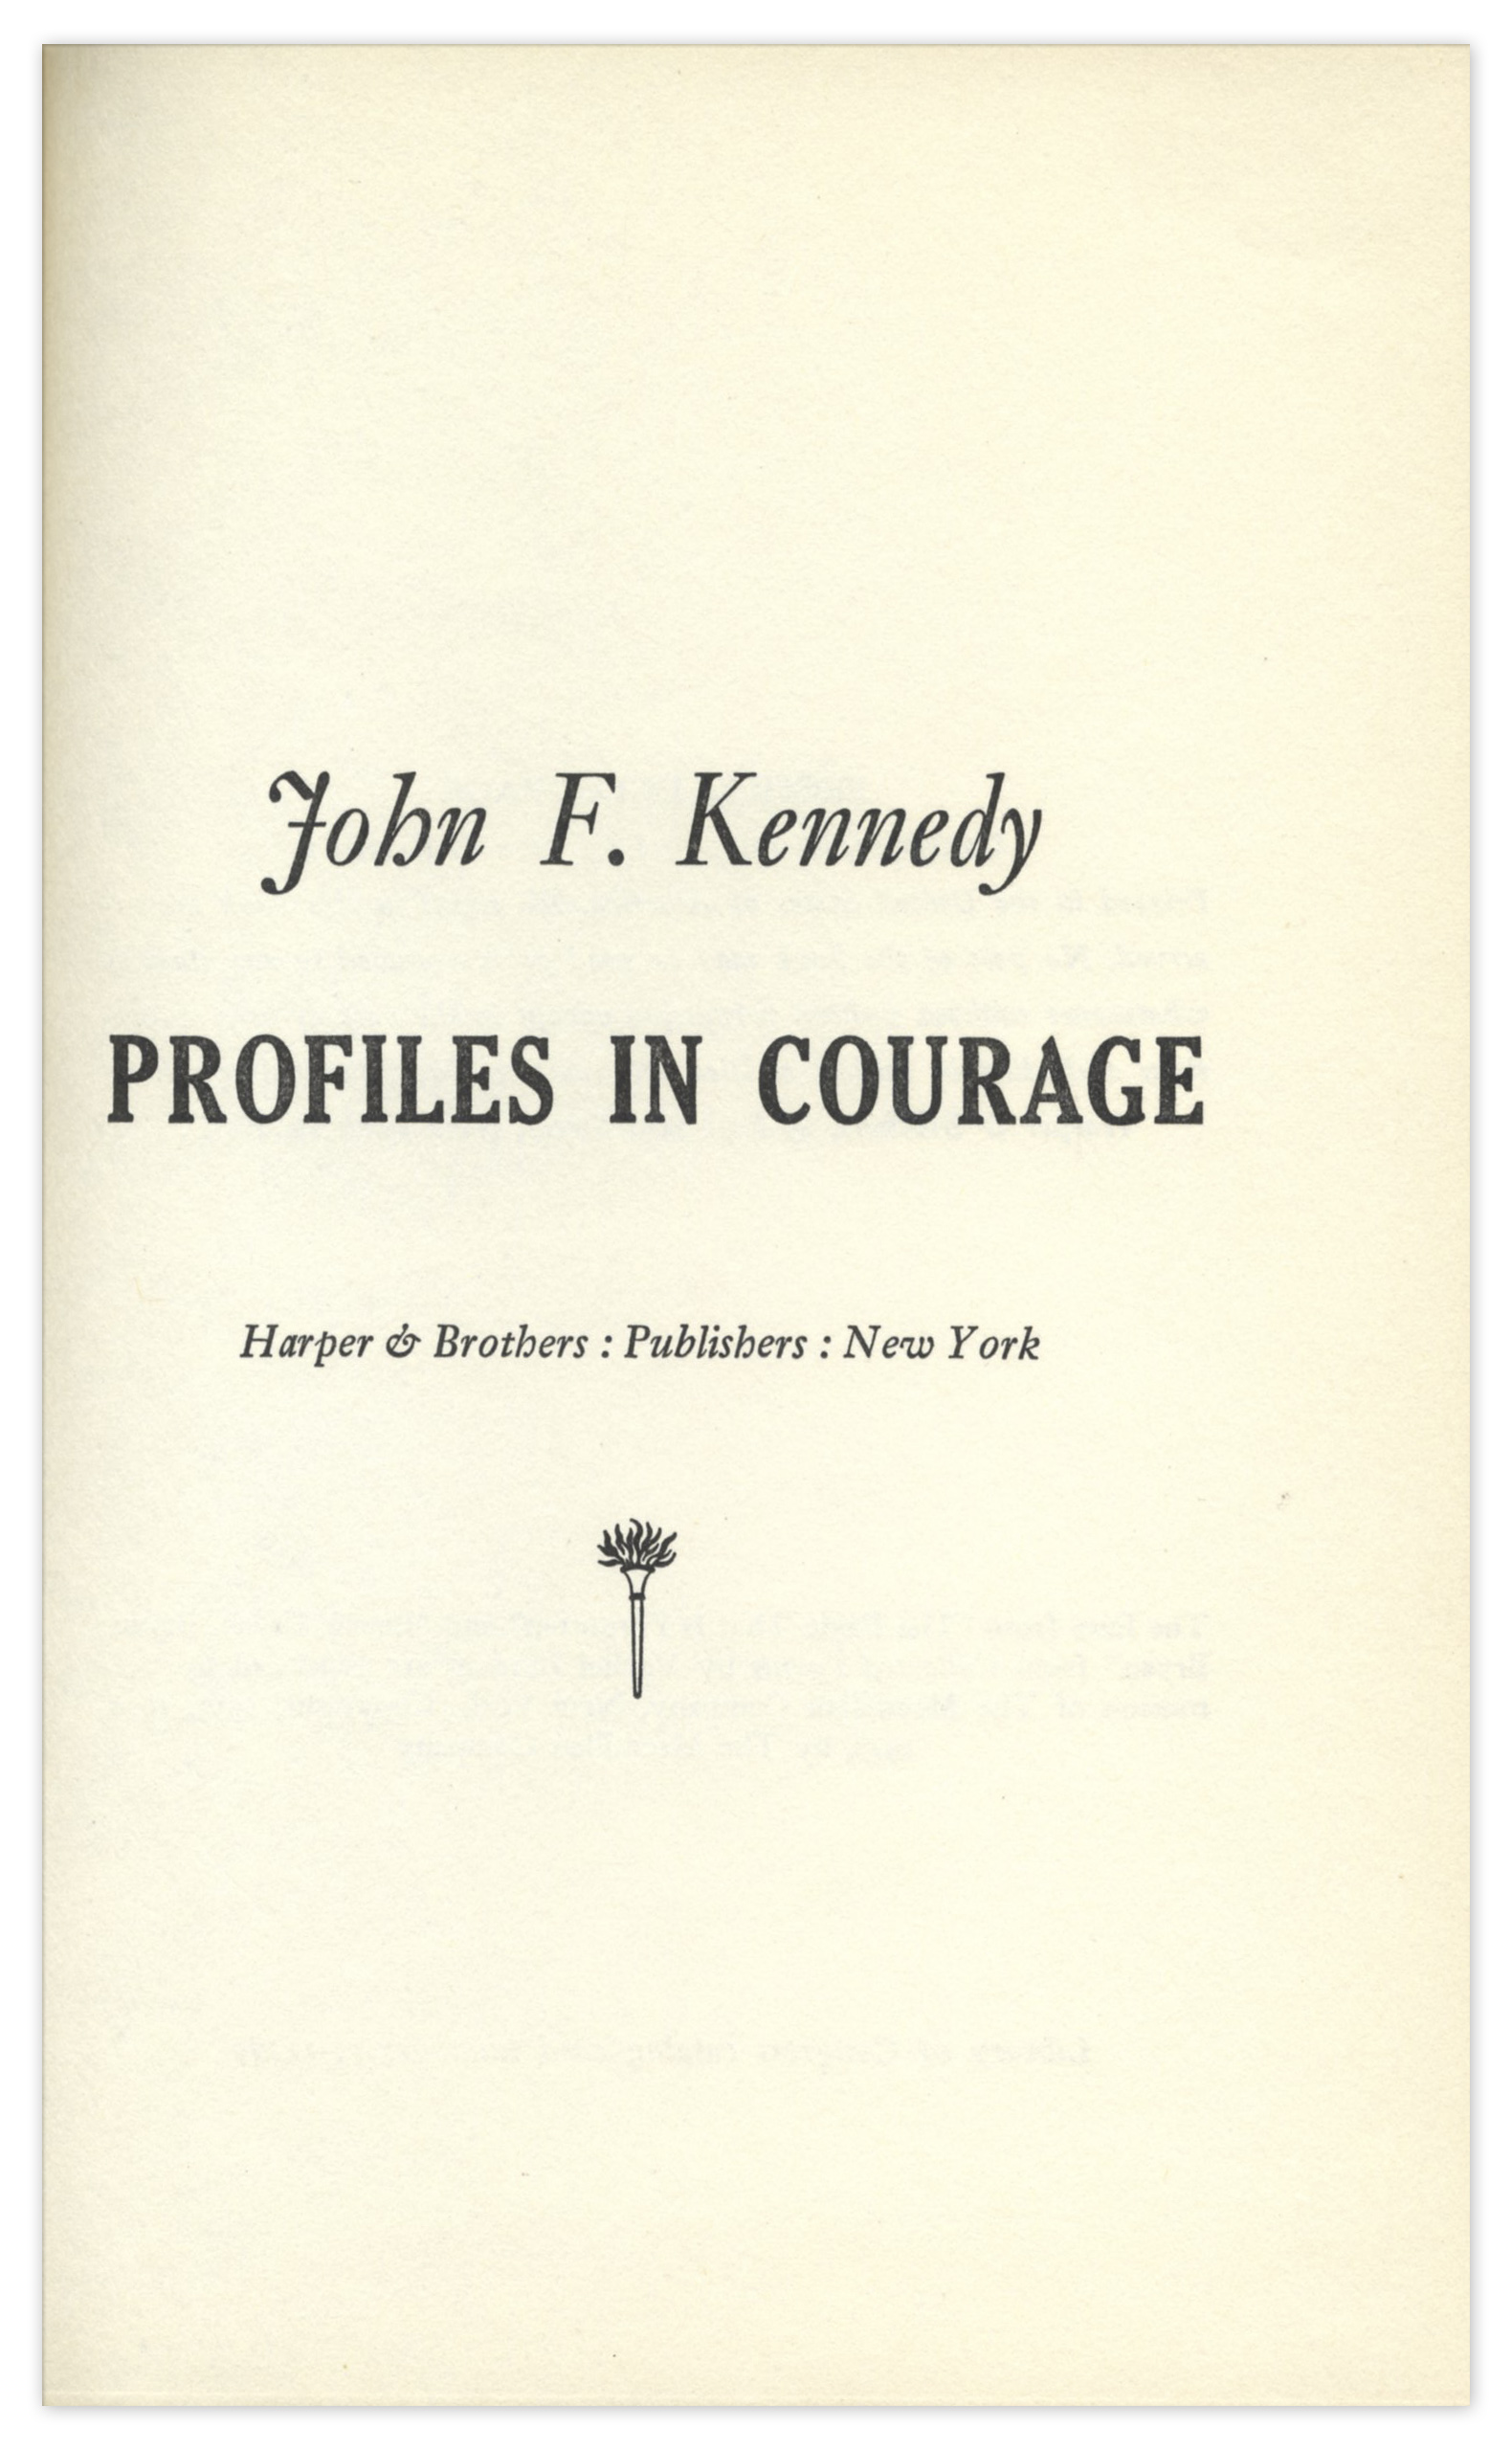 profiles in courage essay contest 2011